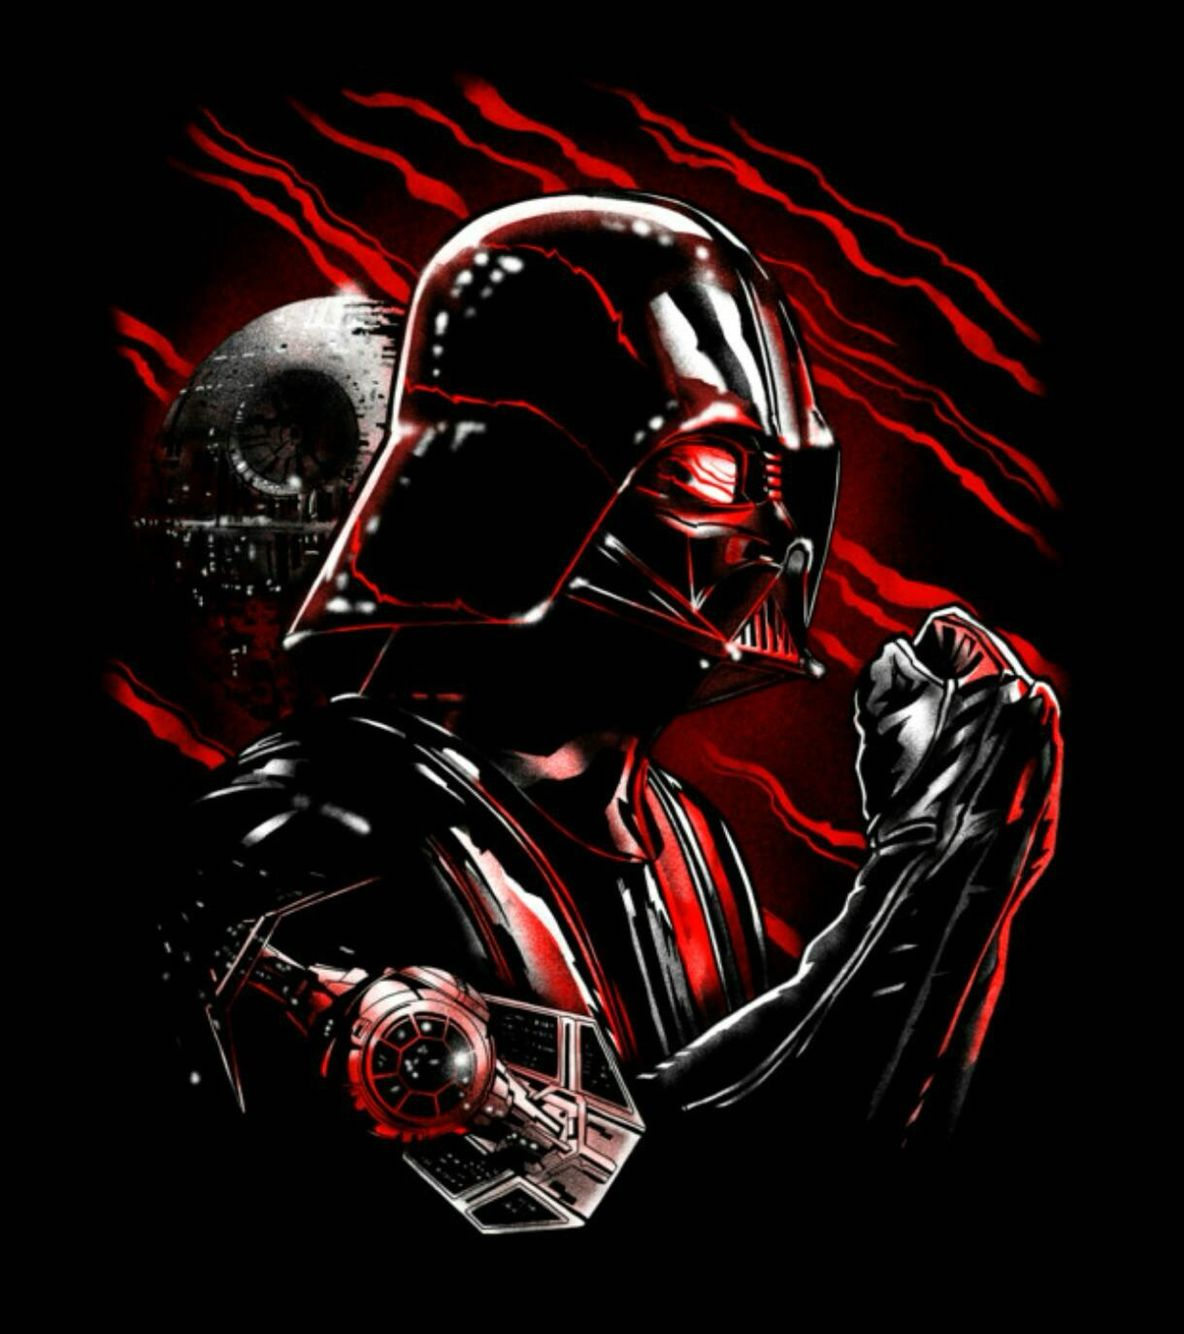 Pin By Lesly Melendez Perez On Star Wars 2 Vader Star Wars Star Wars Images Star Wars Art